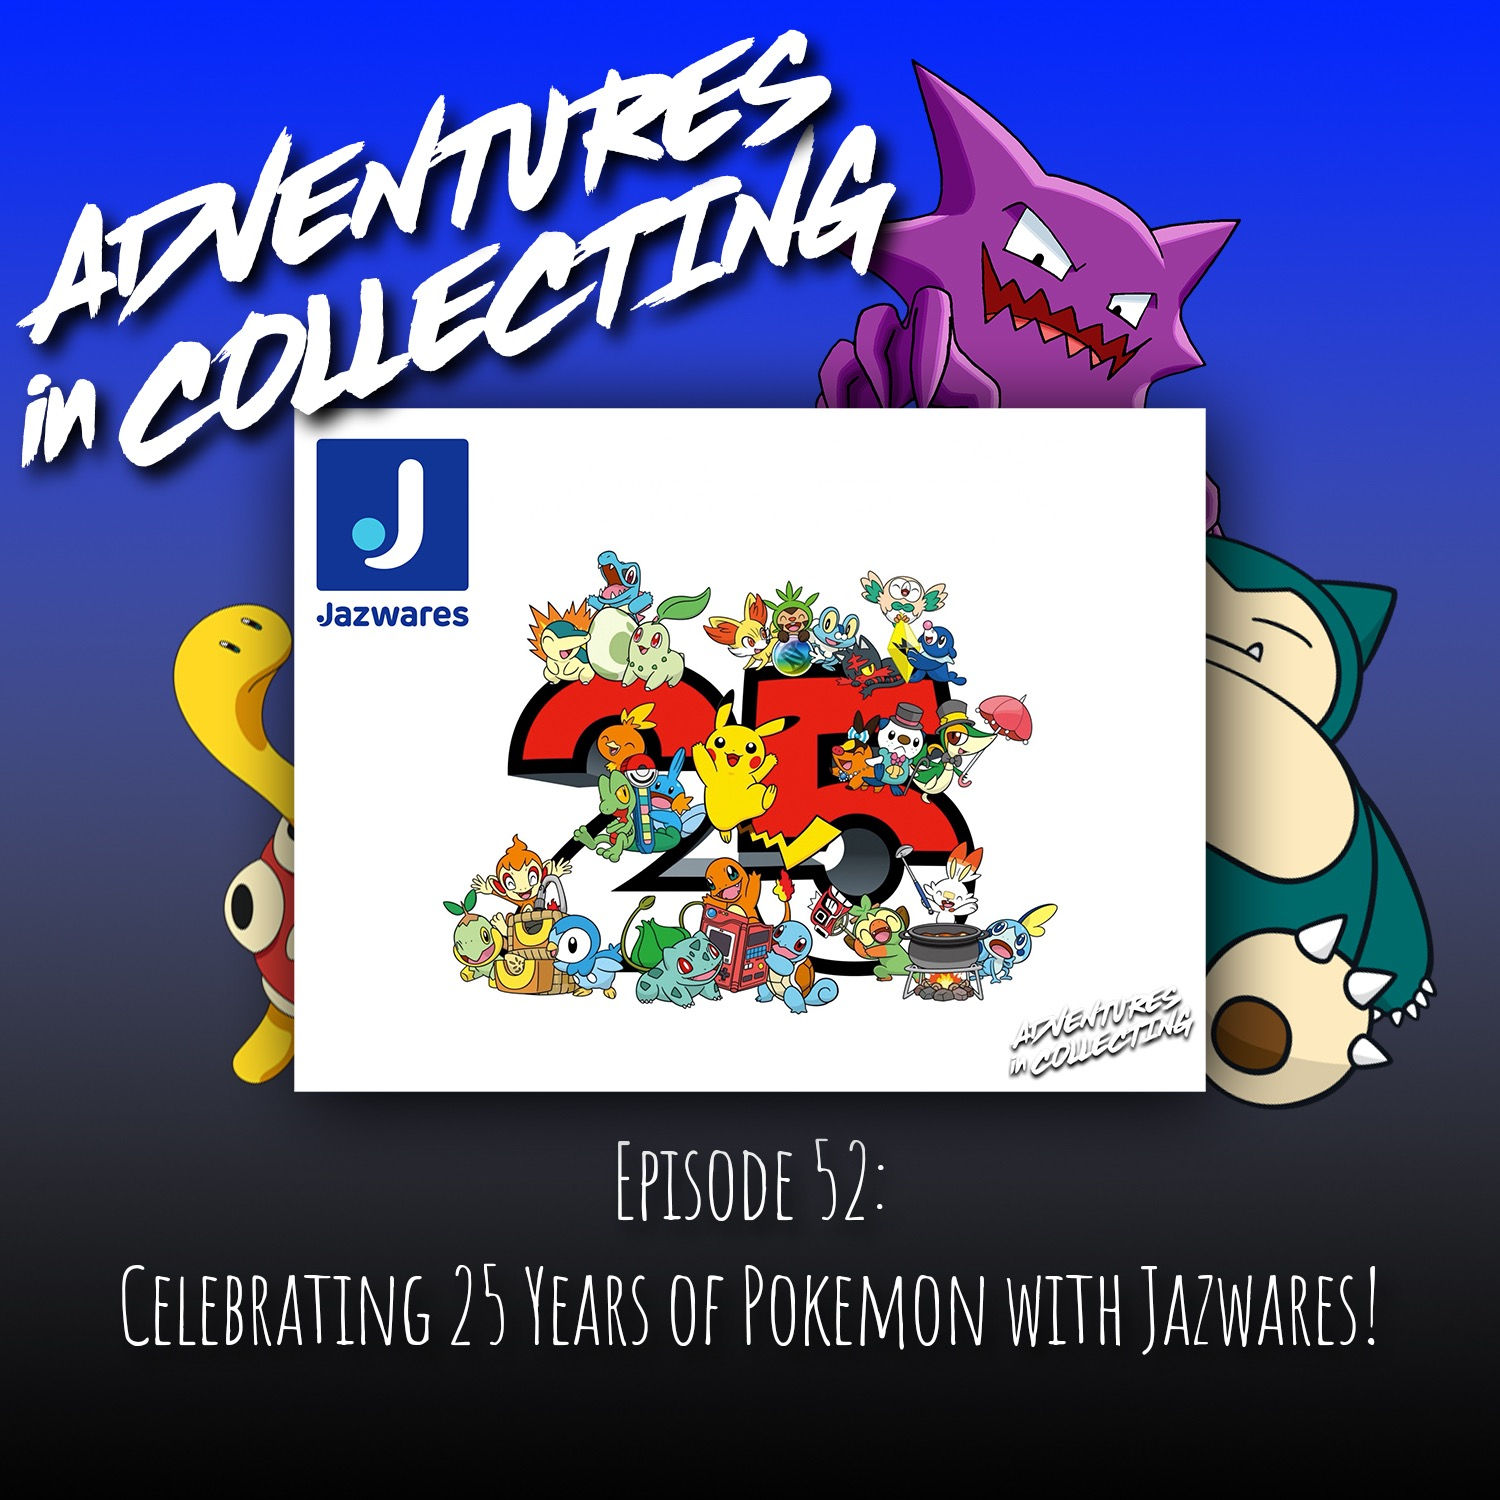 Celebrating 25 Years of Pokemon with Jazwares! – Adventures in Collecting